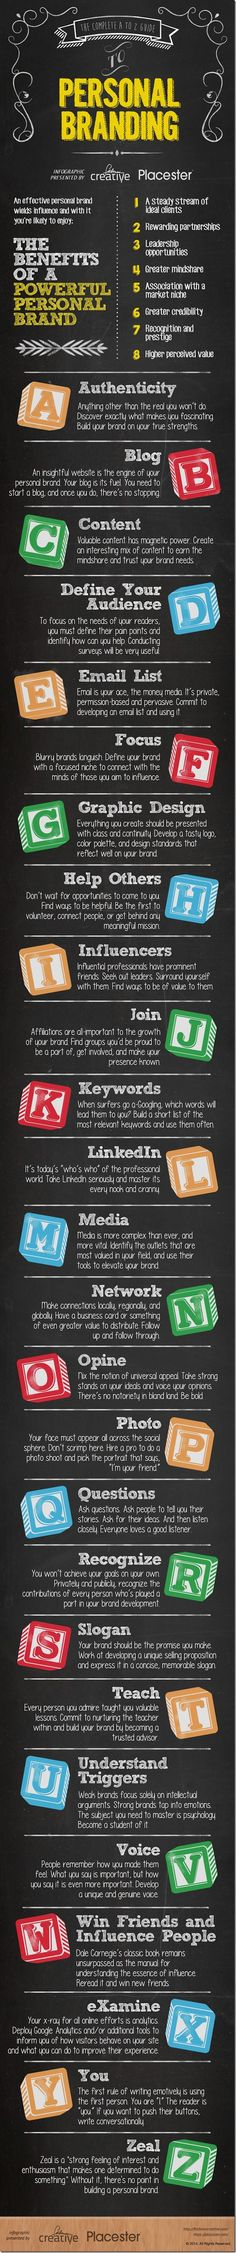 Awesome summary of Branding You the-complete-a-to-z-guide-to-personal-branding-full_thumb